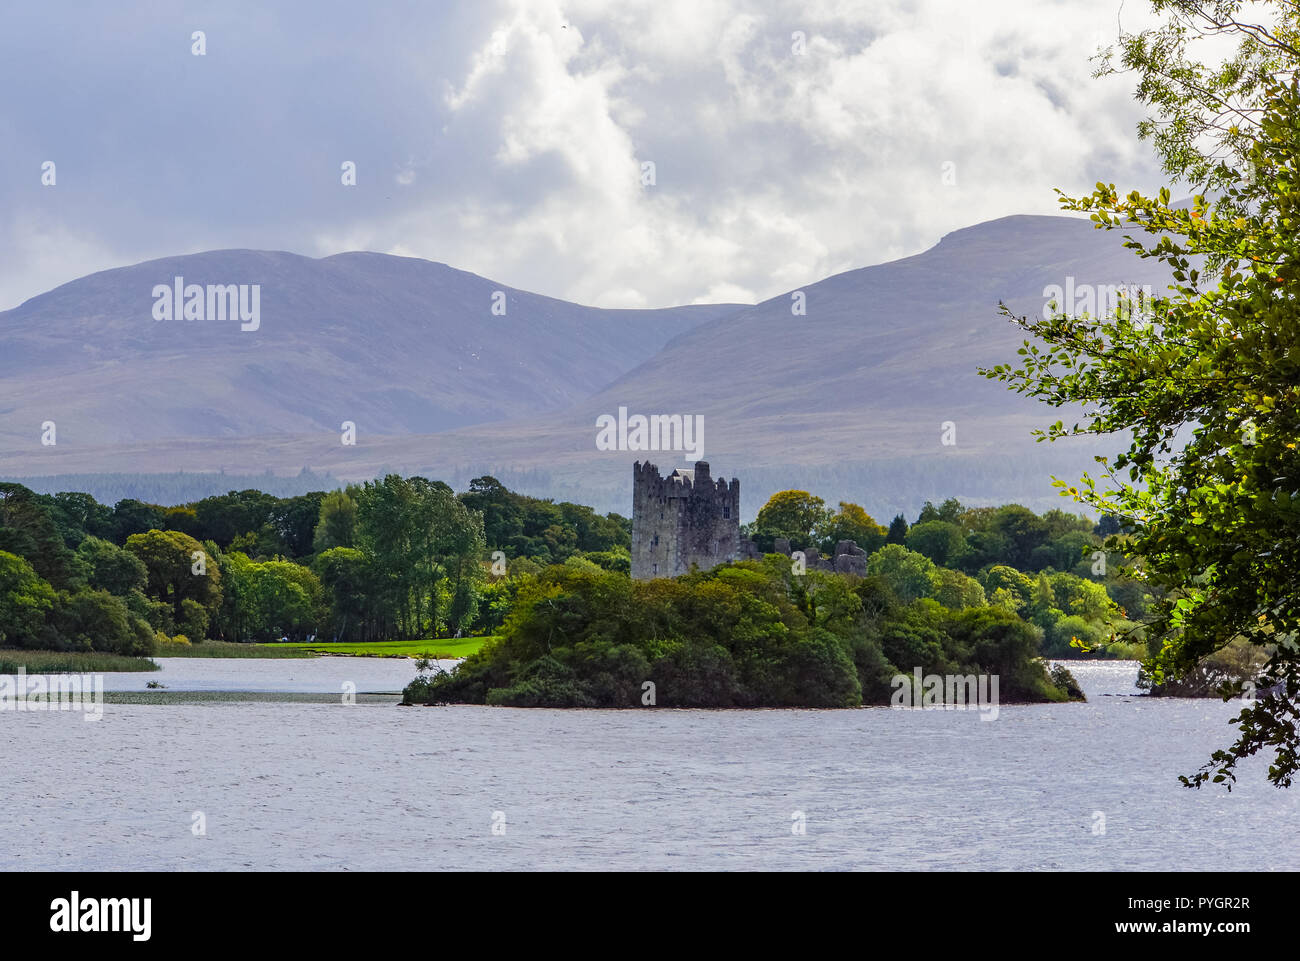 f37c161cbda45 scenic views of Ross Castle while enjoying an Irish traditional Horse and  Jaunting car ride around